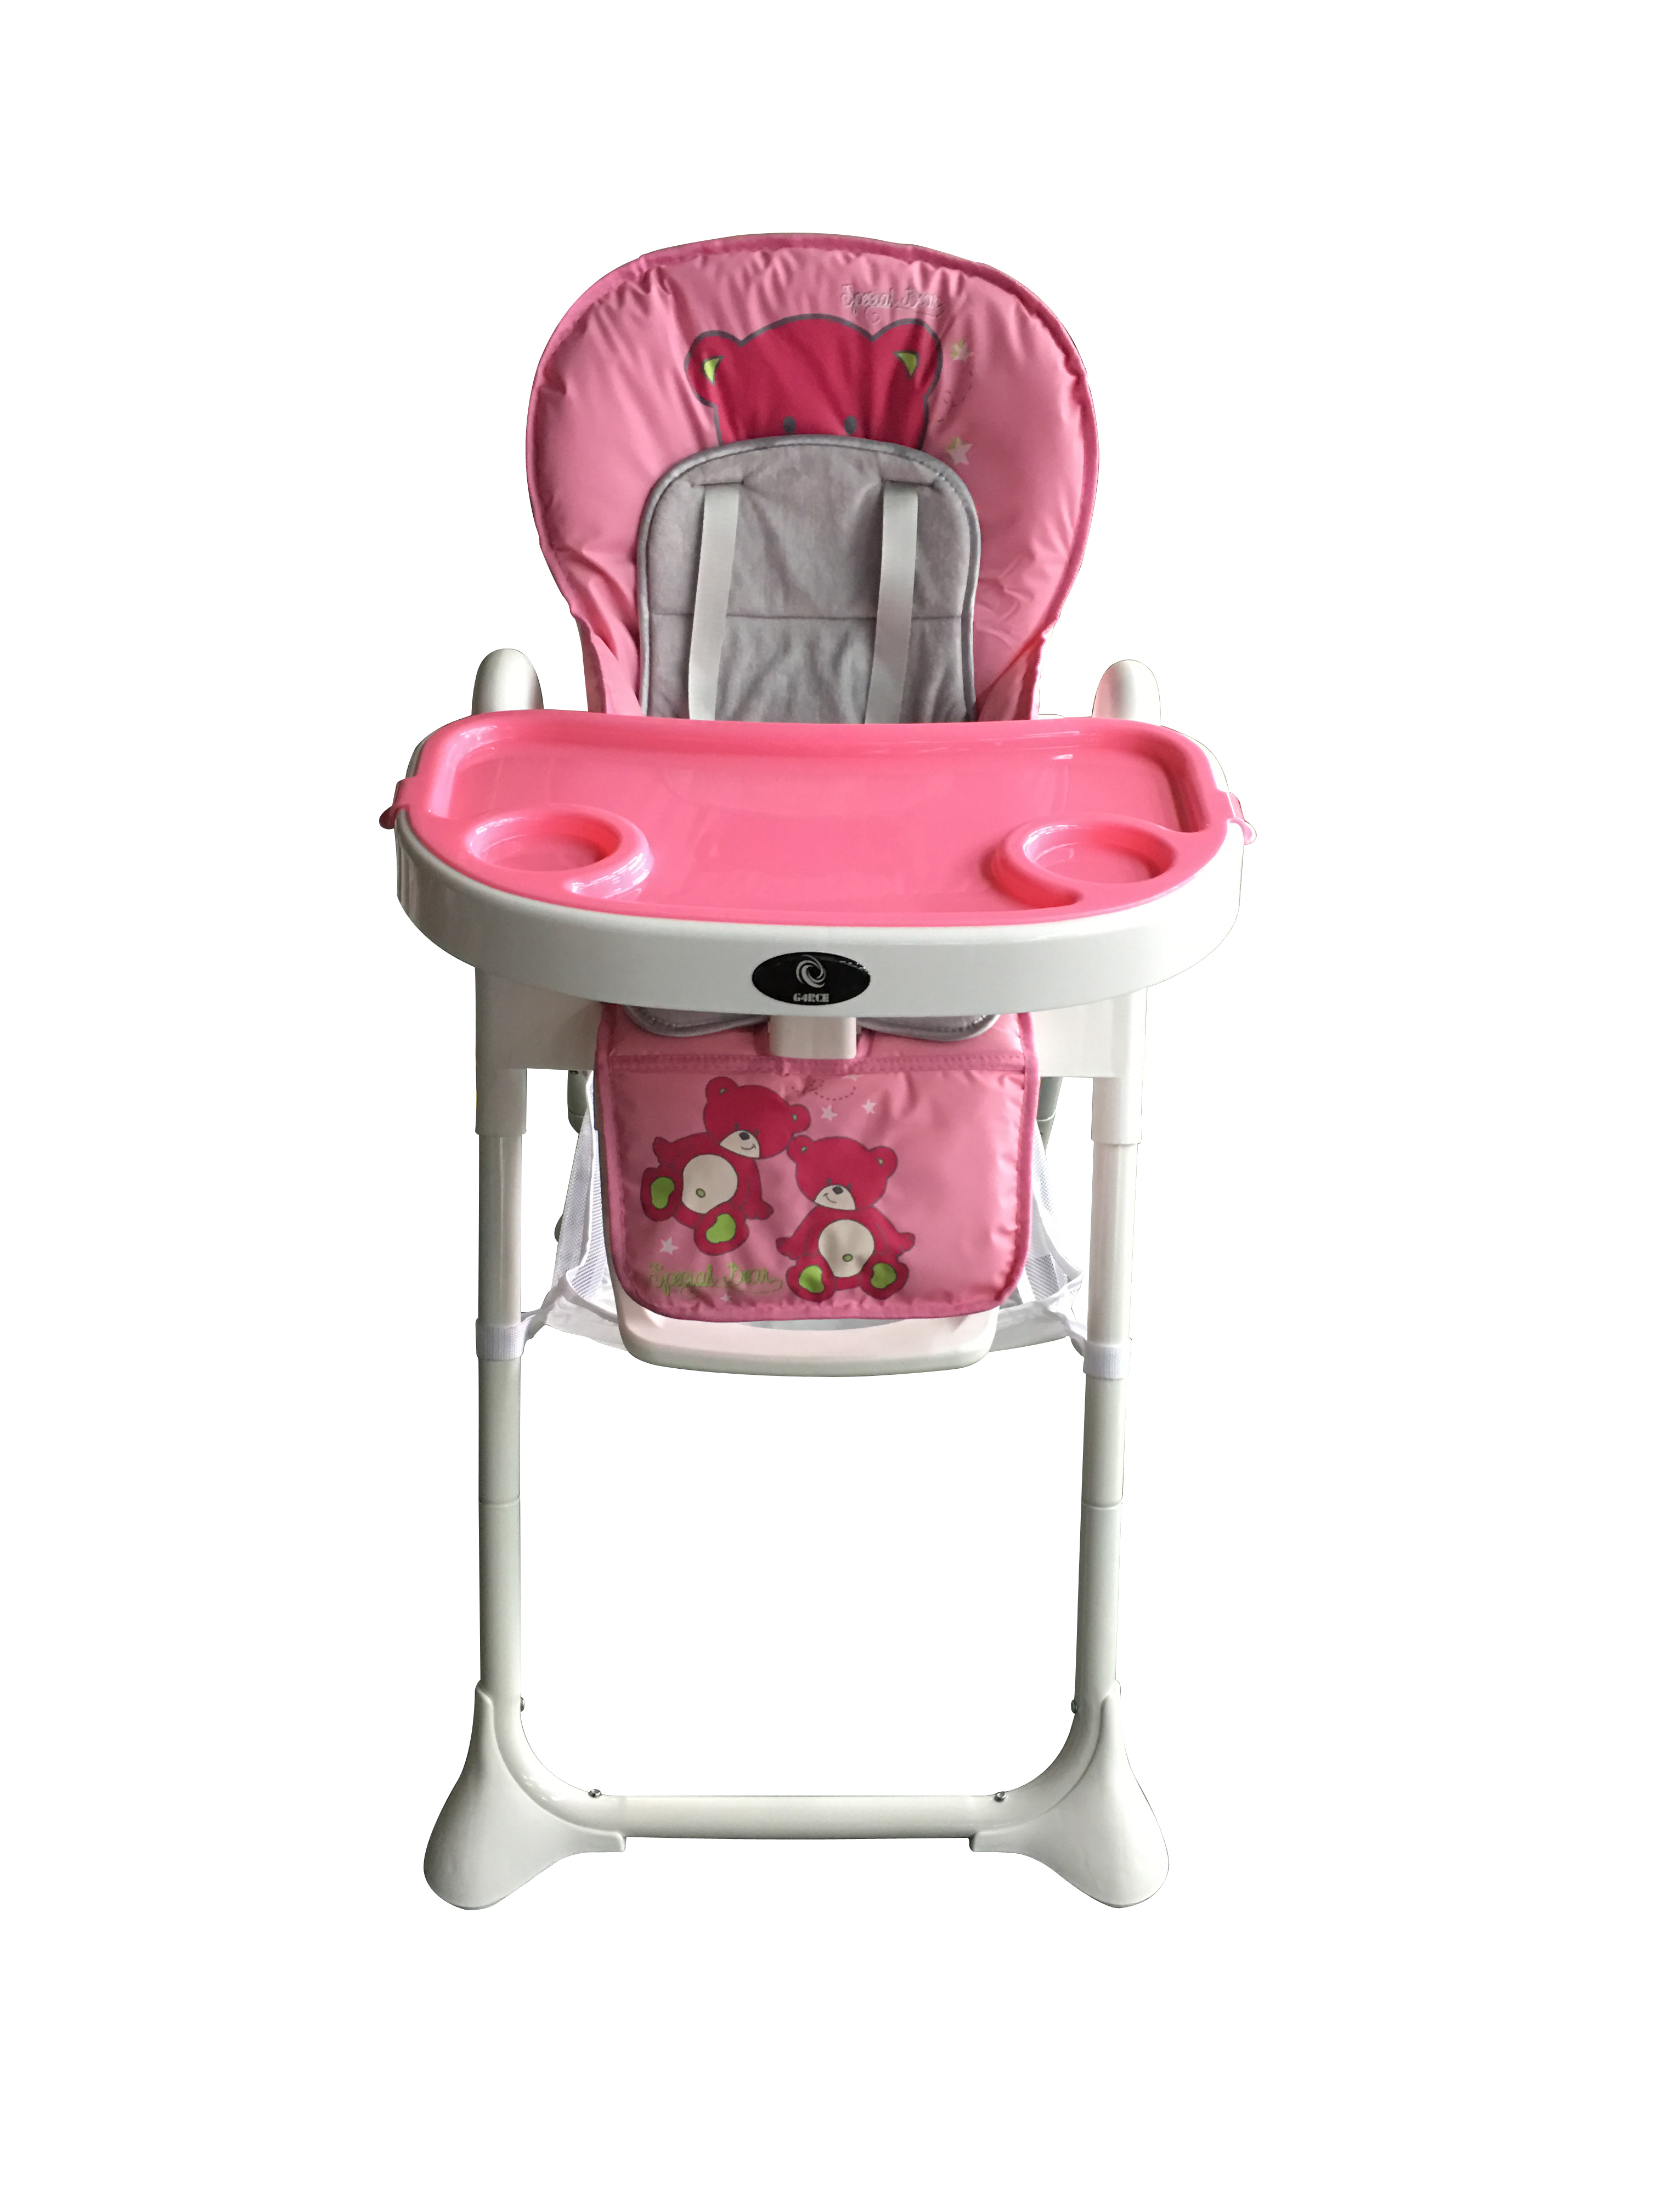 Pink G4RCE Foldable 3 in 1 Baby Toddler Child Kids Infant Highchair Feeding Recliner Adjustable Seat Chair in Pink /& Blue